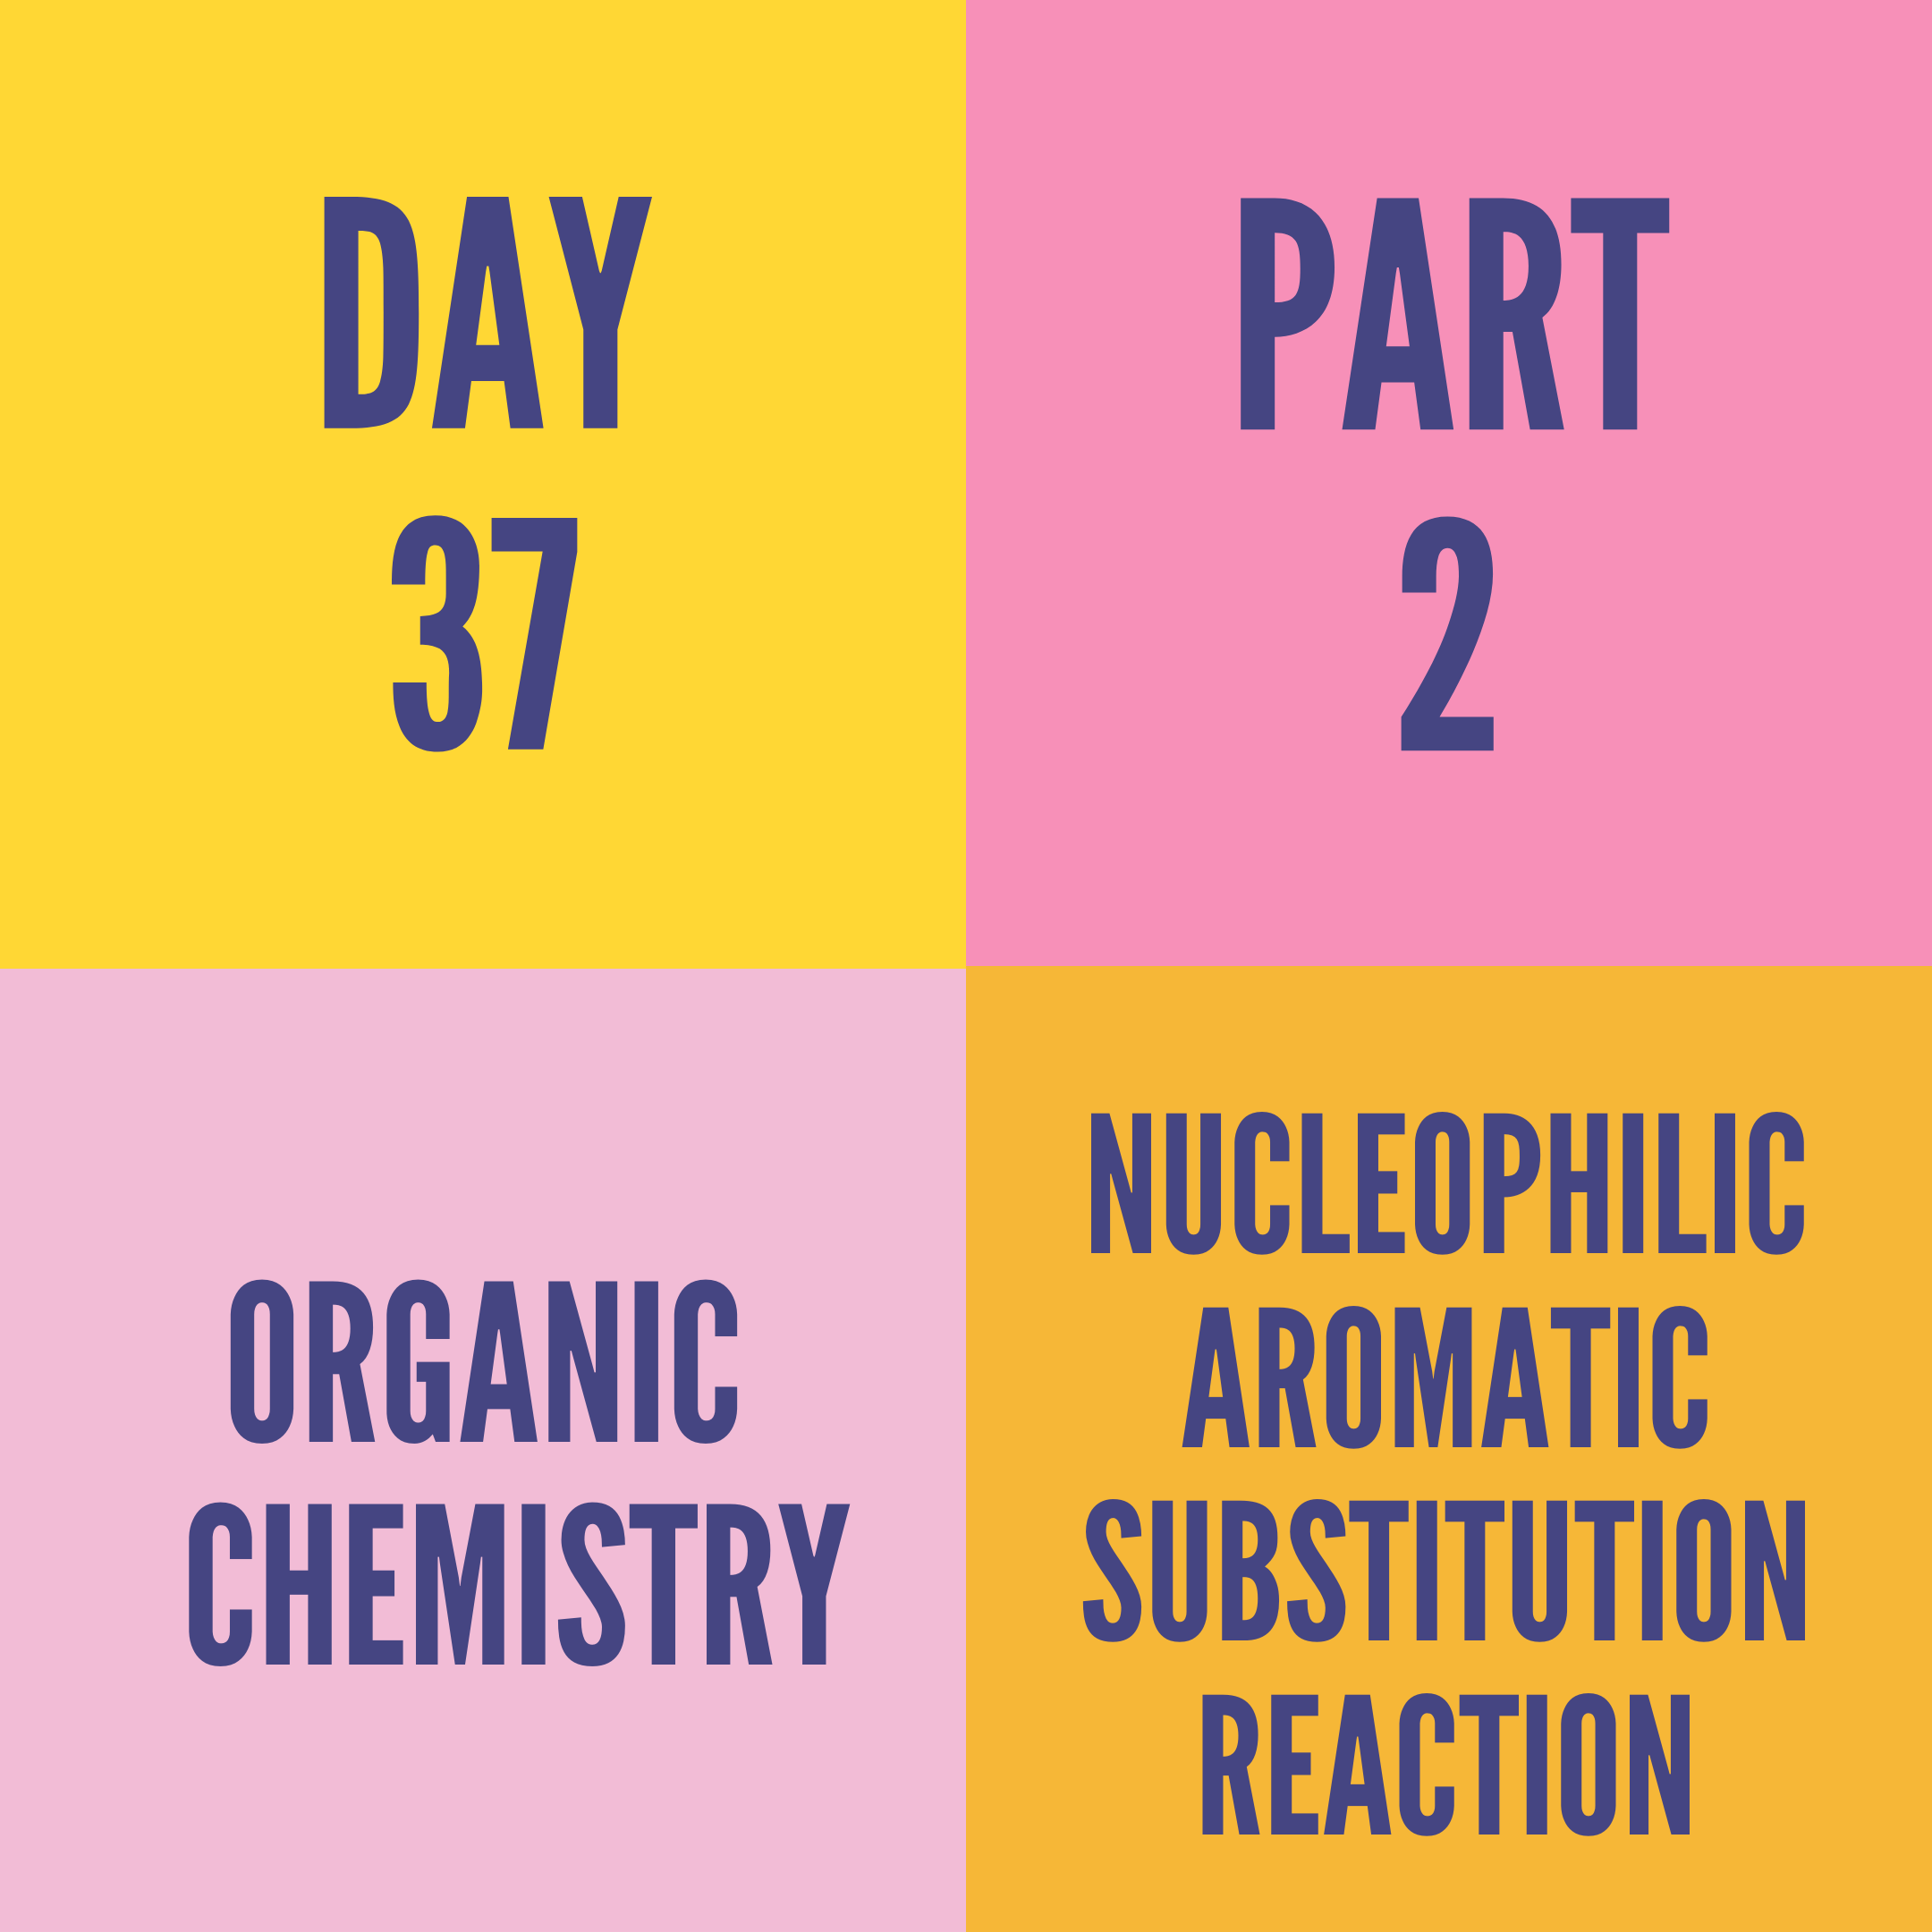 DAY-37 PART-2 NUCLEOPHILIC AROMATIC SUBSTITUTION REACTION